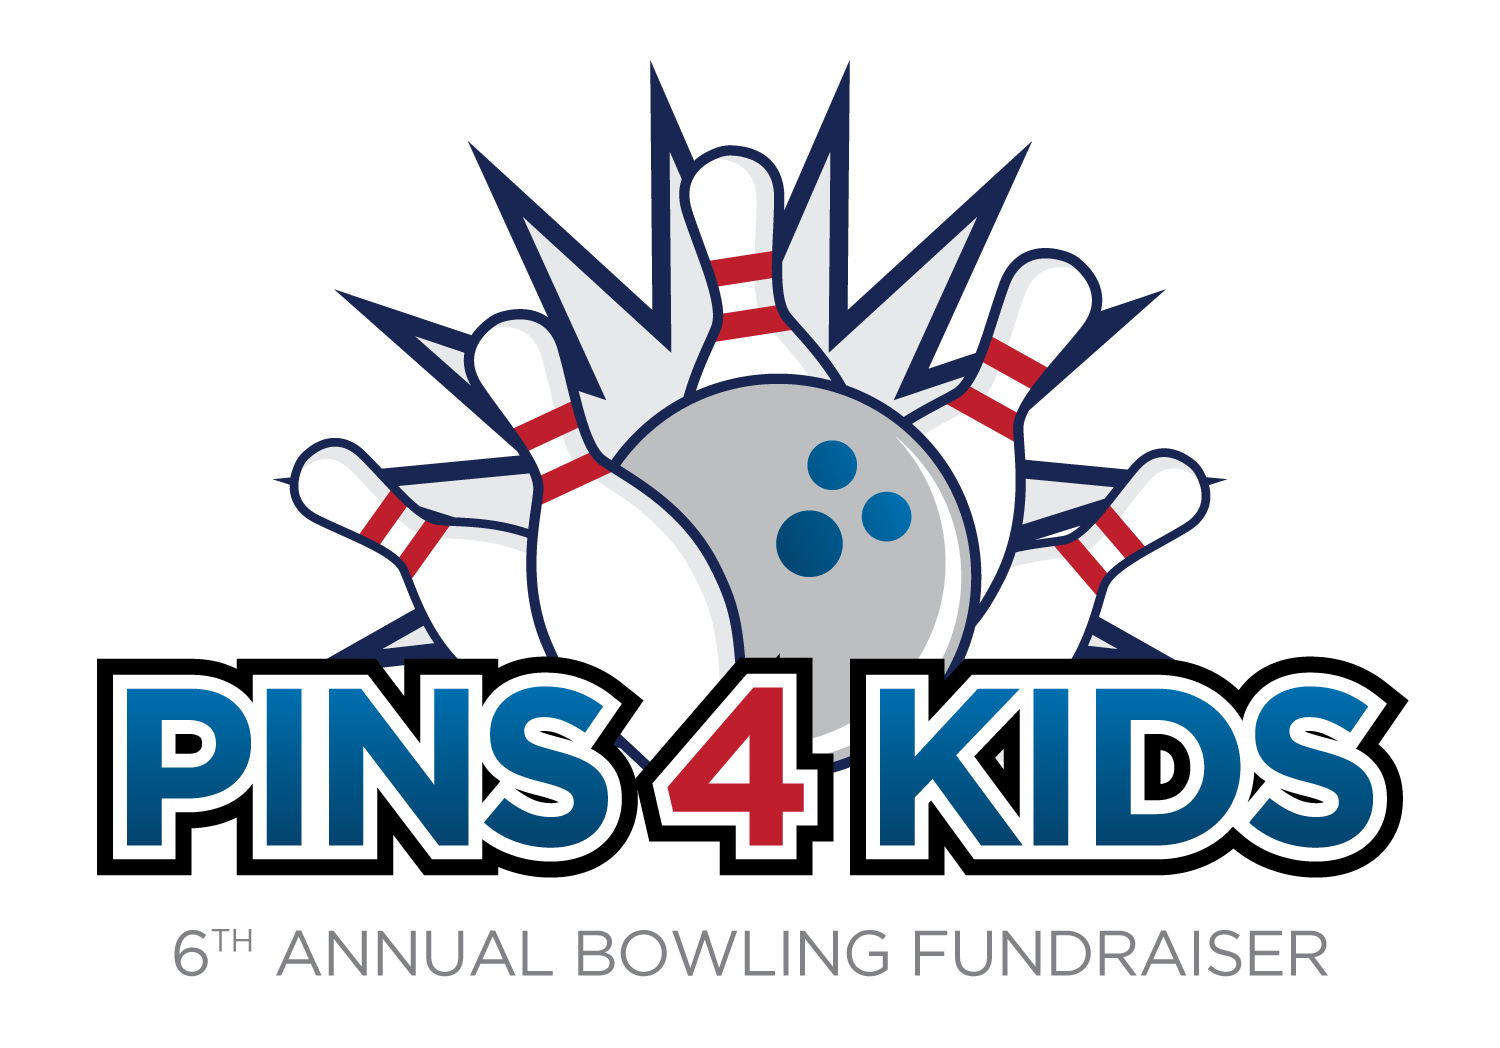 2020 Pins 4 Kids is Rescheduled to May 8th!